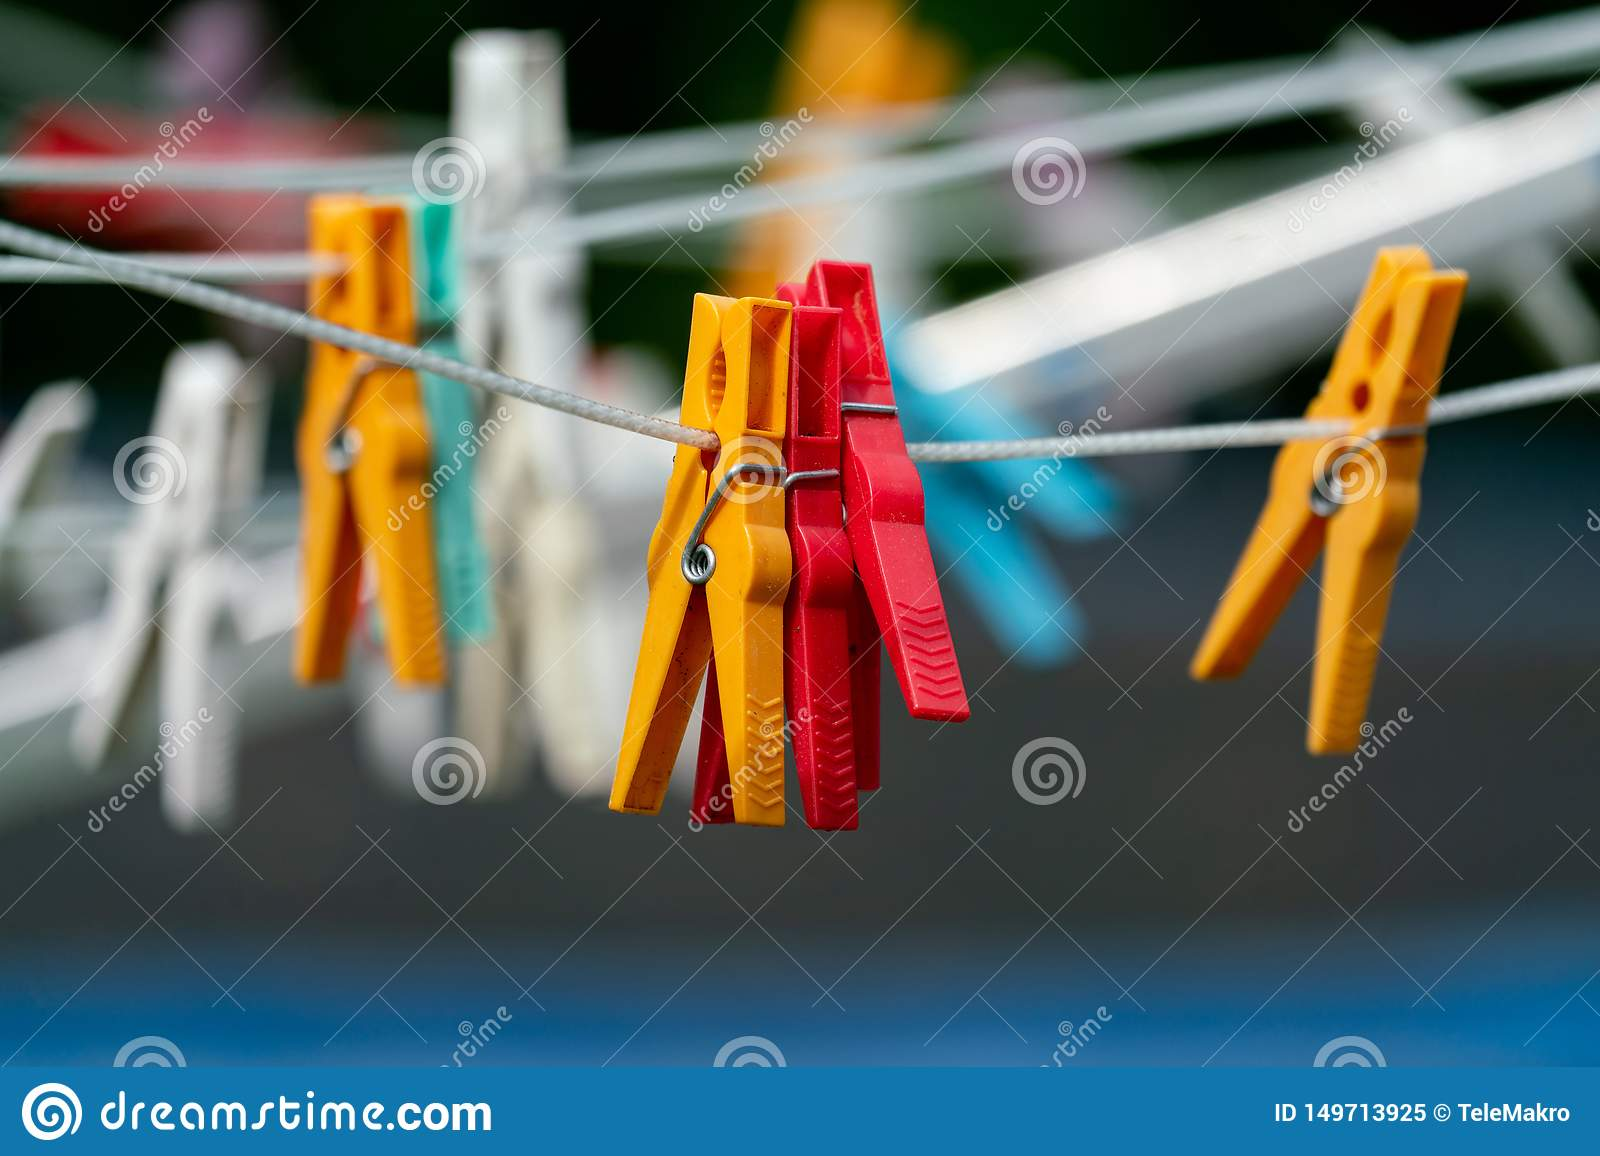 Red and yellow clothespins on washing line